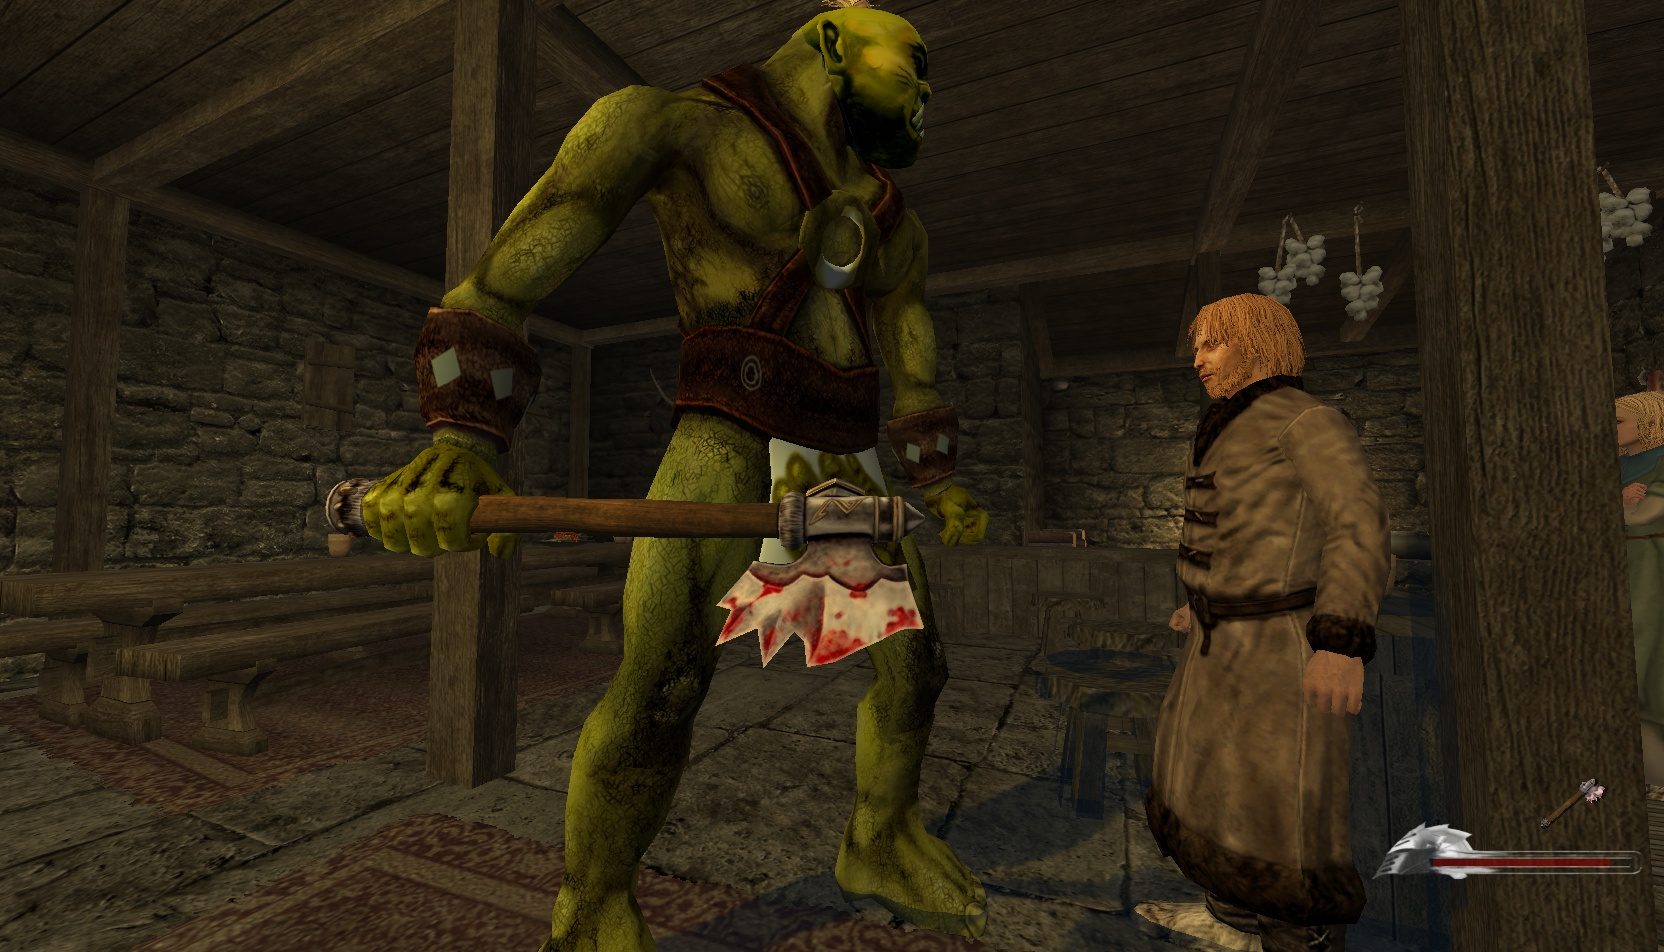 Mount and blade warband sex mods nudes films